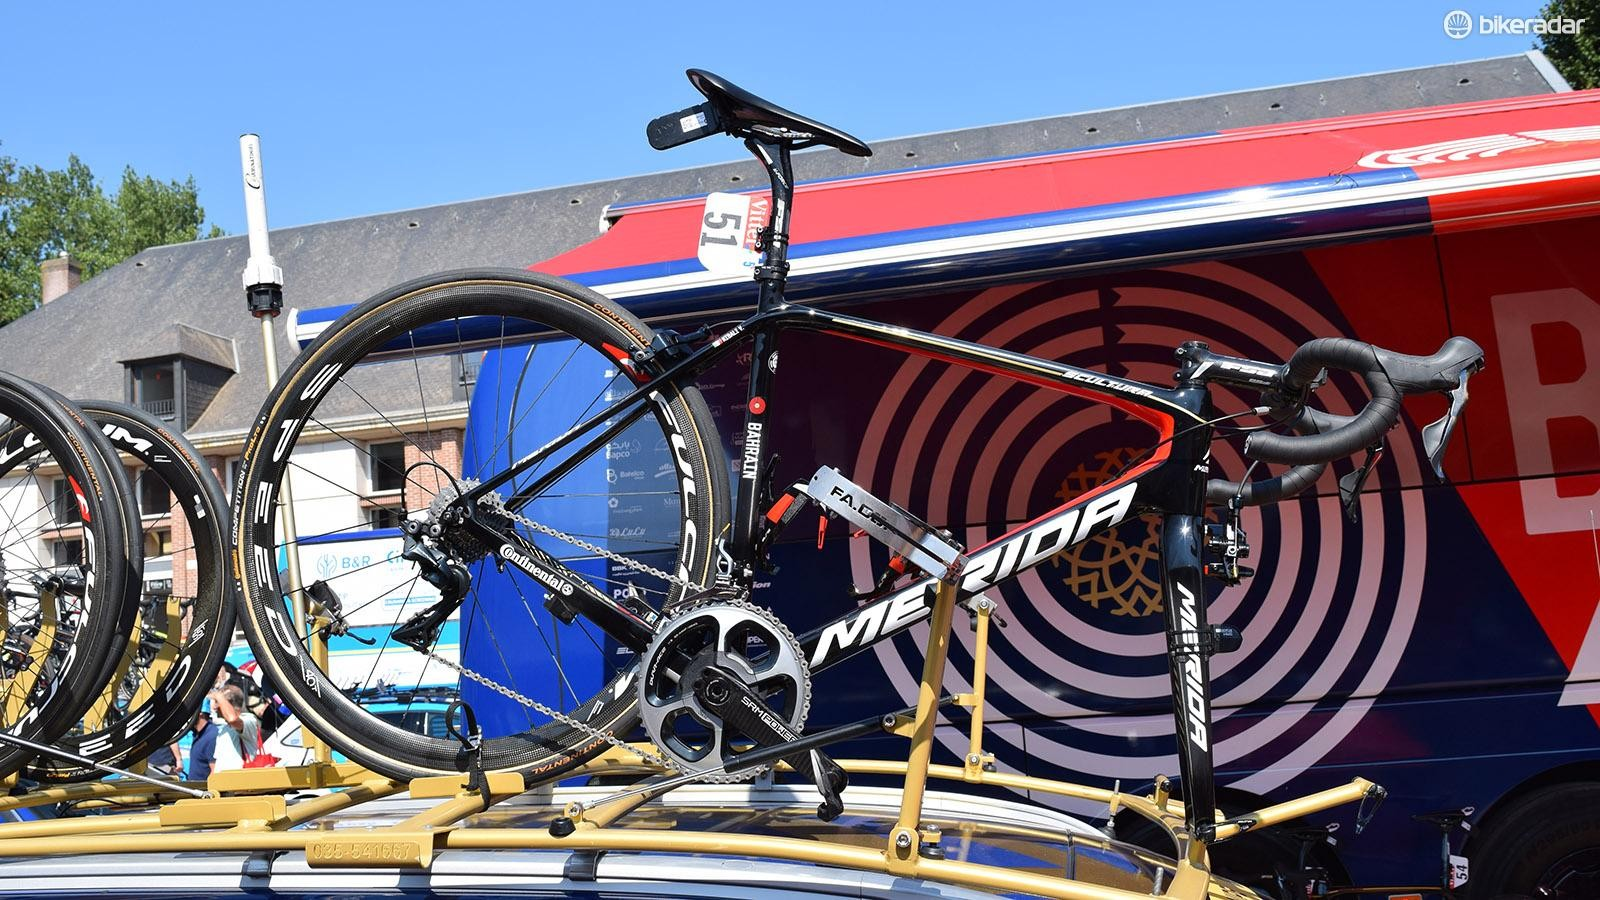 Vincenzo Nibali used mechanical Shimano Dura-Ace components for the cobbled stage 9